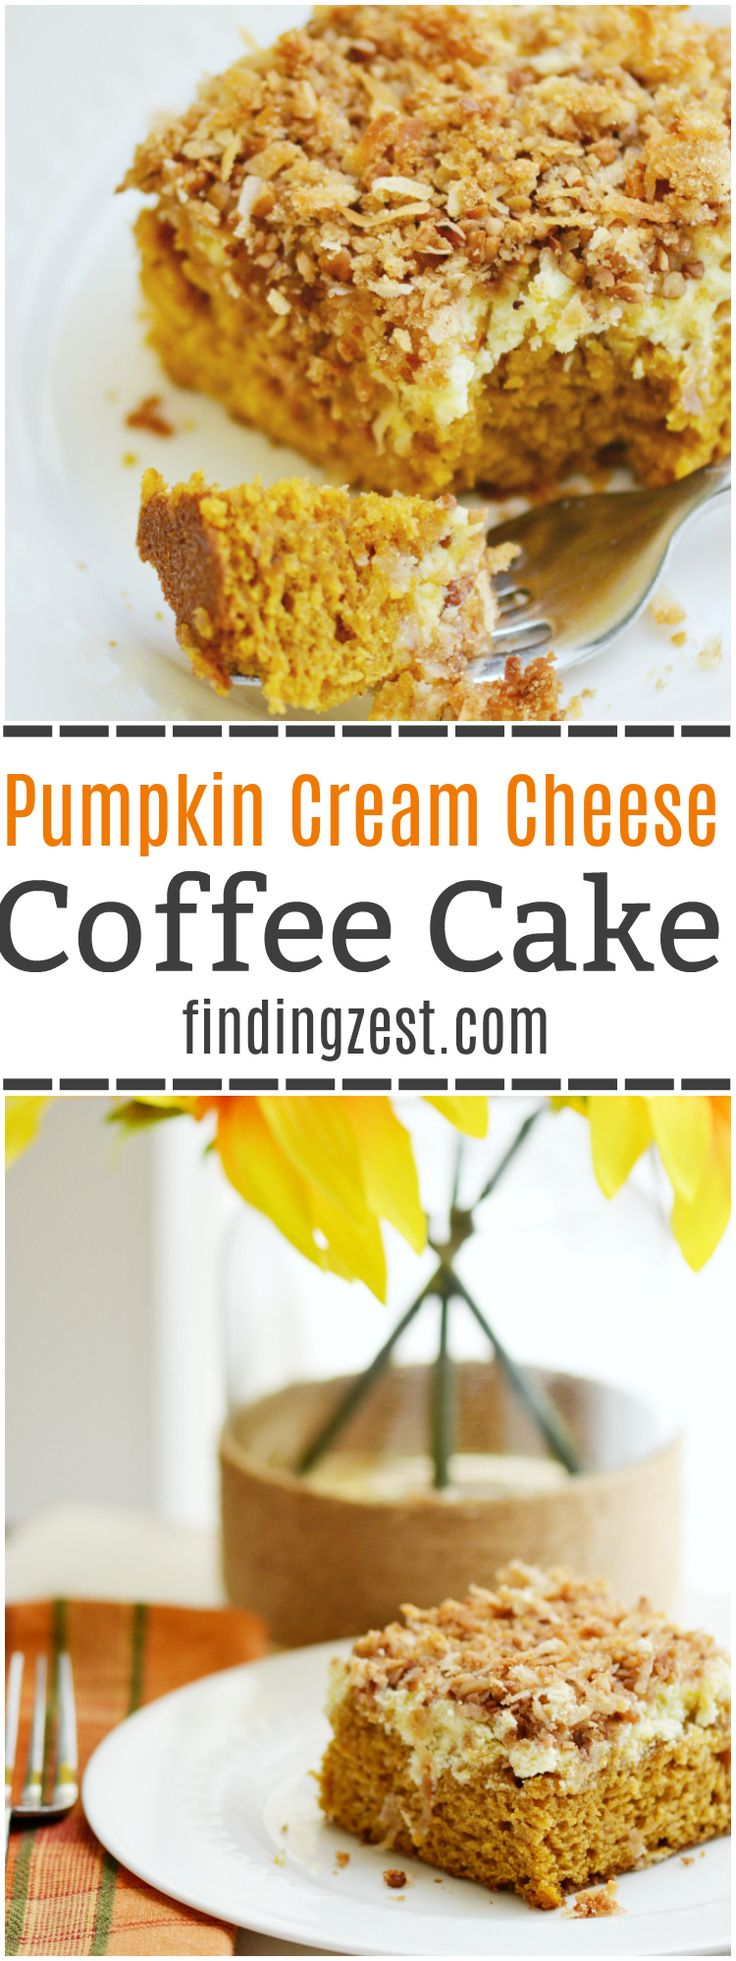 This homemade Pumpkin Cream Cheese Coffee Cake is a great brunch or breakfast for fall, including Thanksgiving! Serve it up with some fresh coffee!